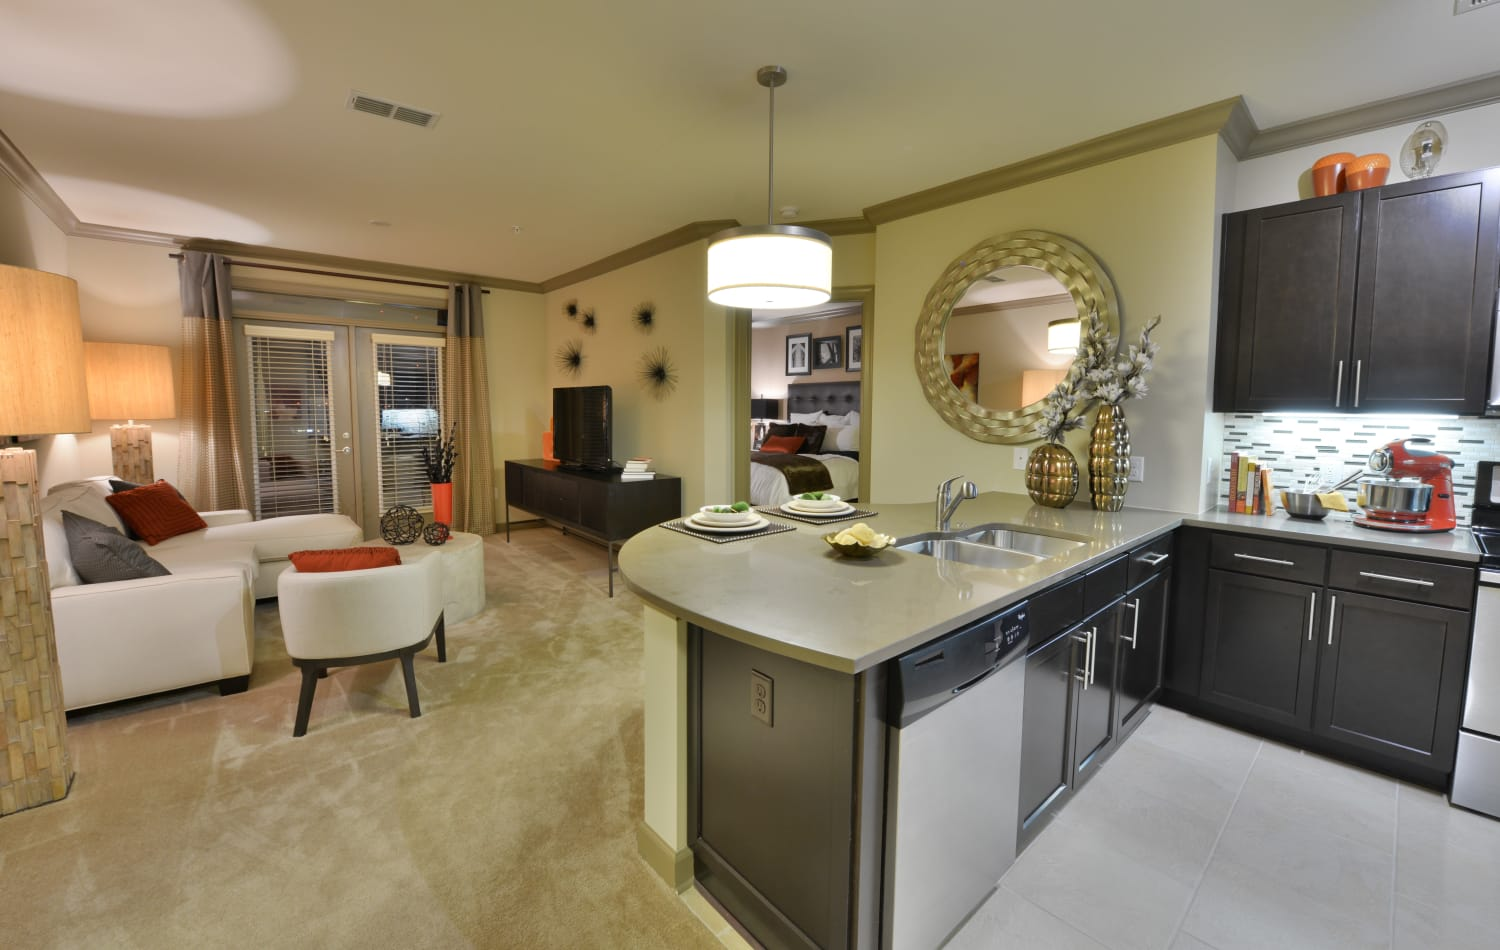 Model apartment home showcasing open floor plan layout and modern kitchen at Emory Point